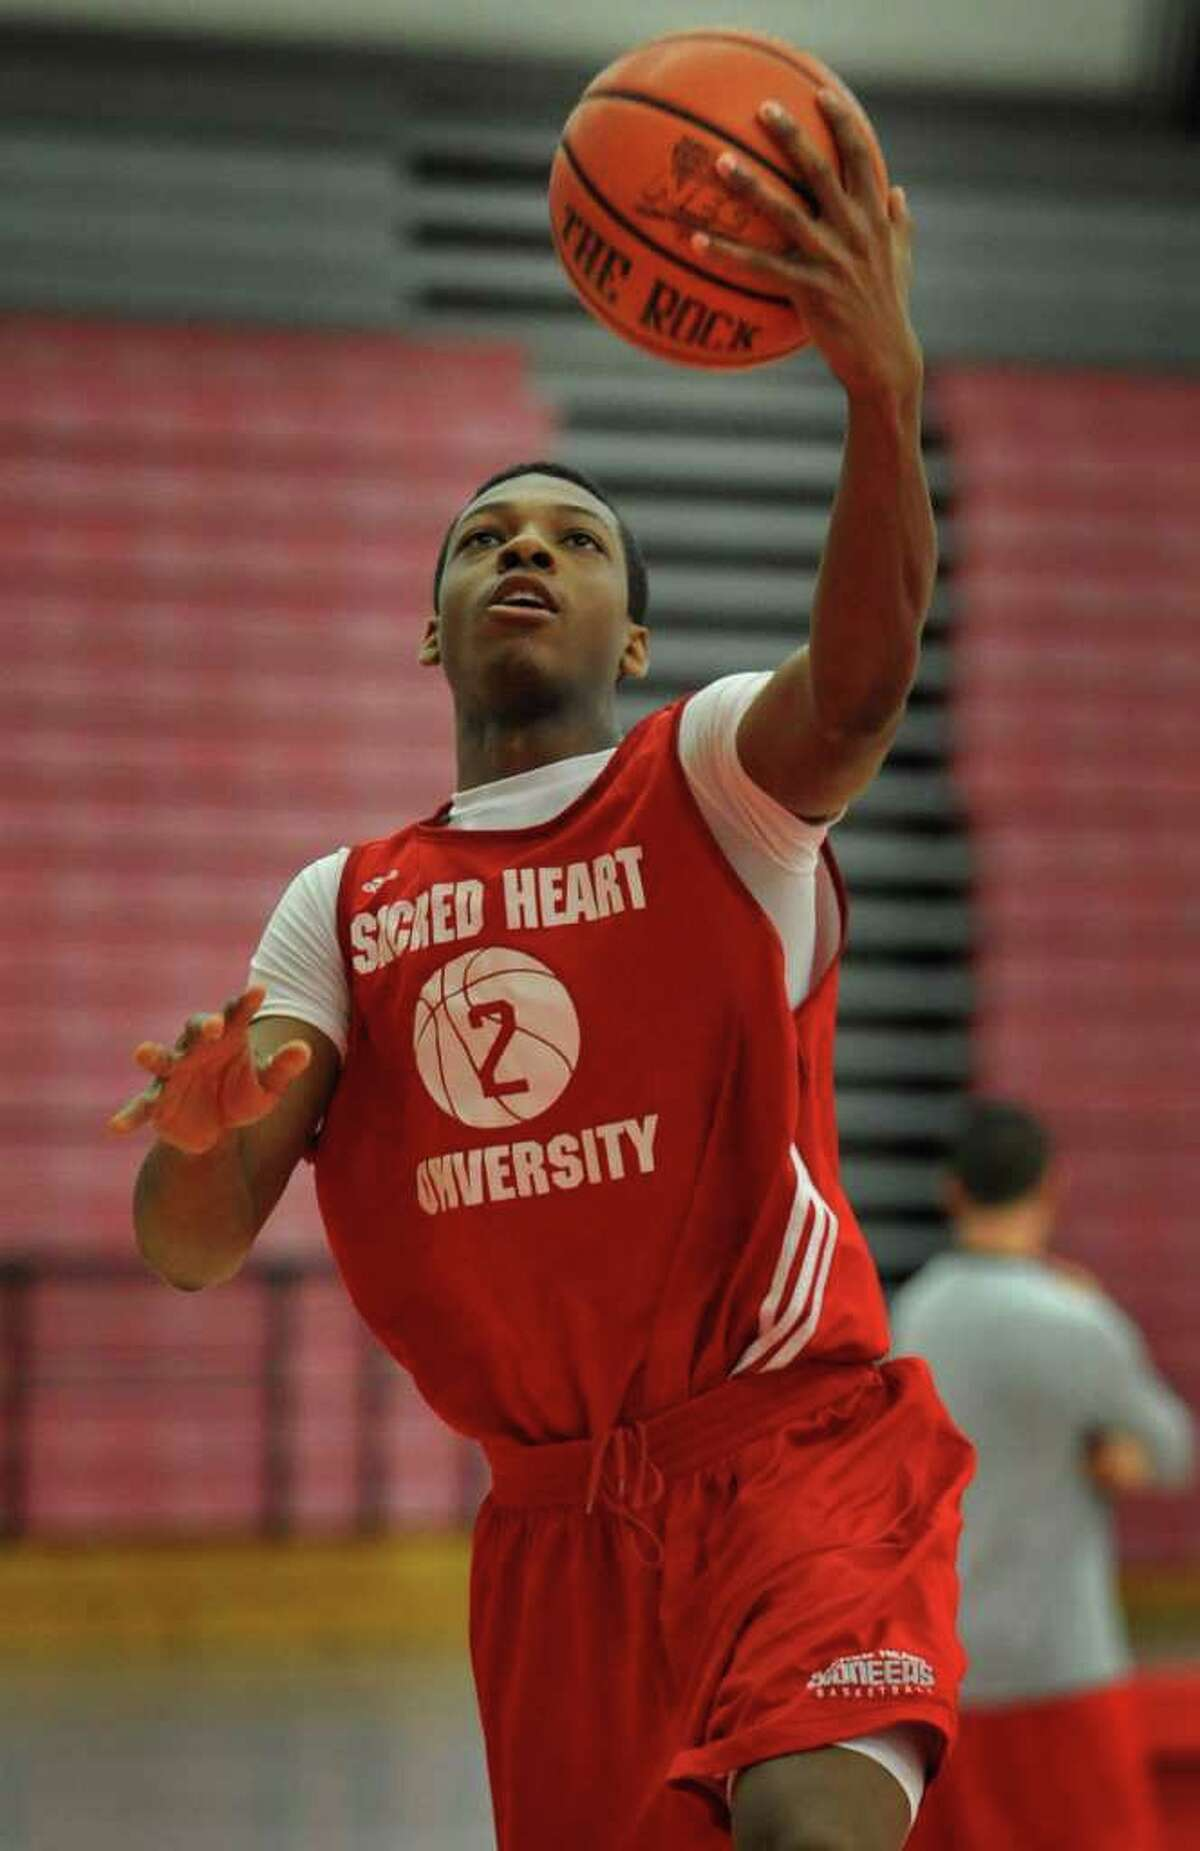 Sacred Heart University's Evan Kelly of Norwalk drives in for a lay-up during basketball practice at the university's Pitt Center recently.